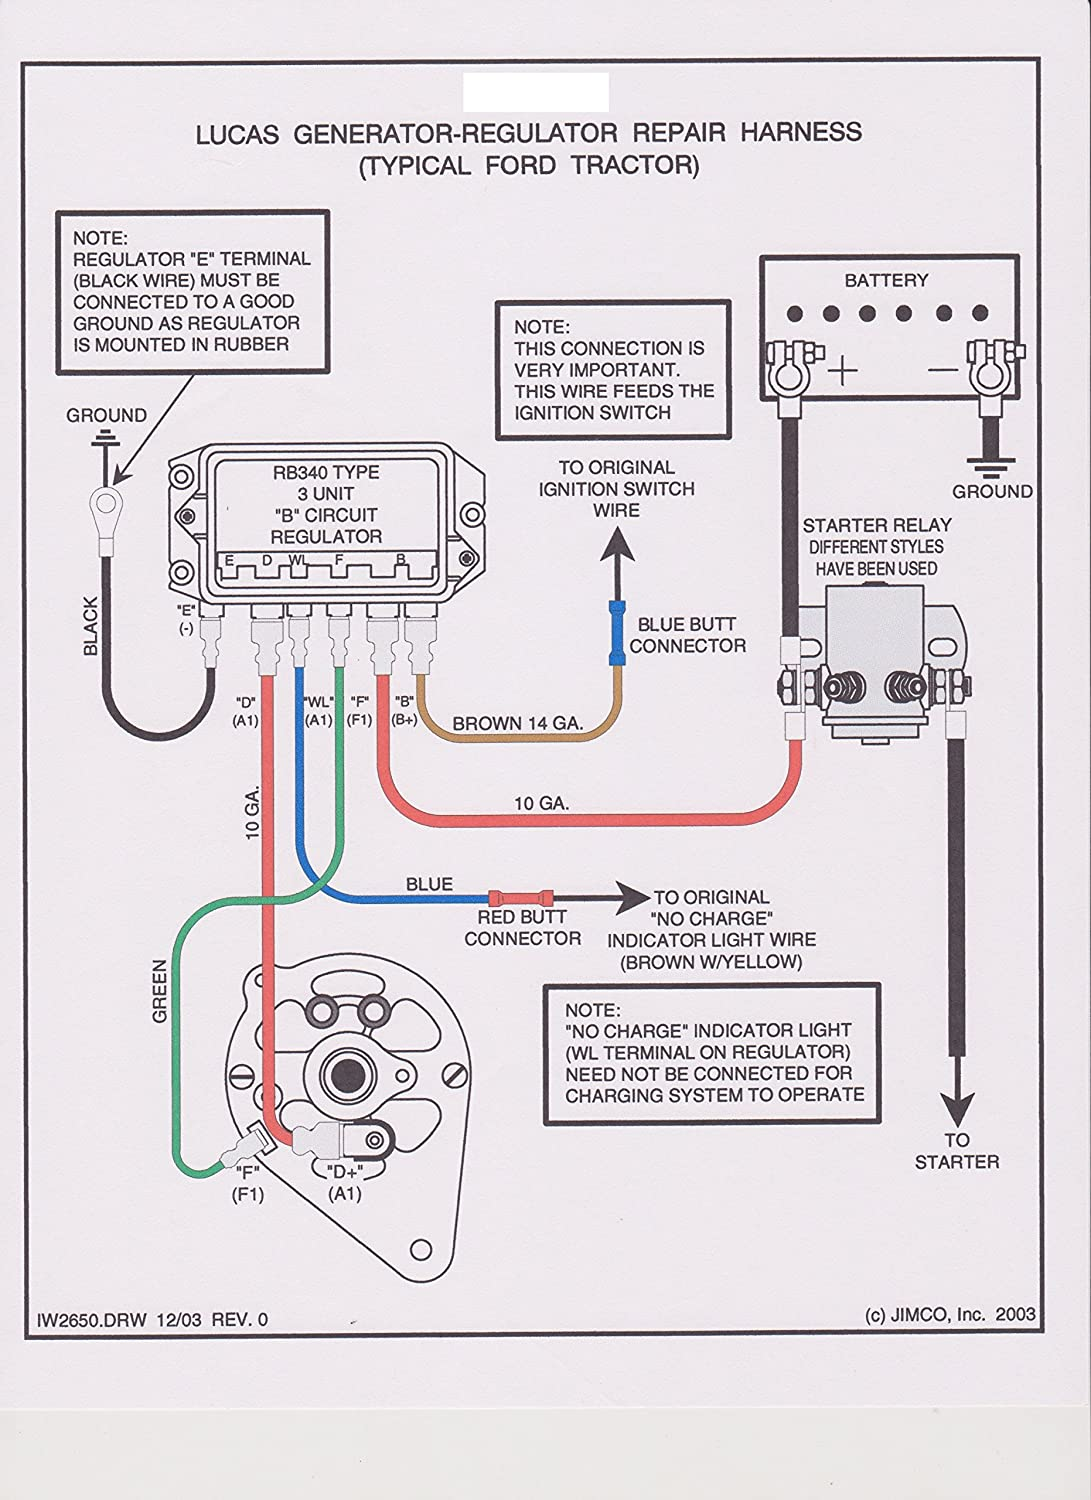 ford 9n wiring diagram 12 volt 1 wire alternator ford auto wiring diagram  wiring for farmall cub with 12 volt system wiring for farmall 460